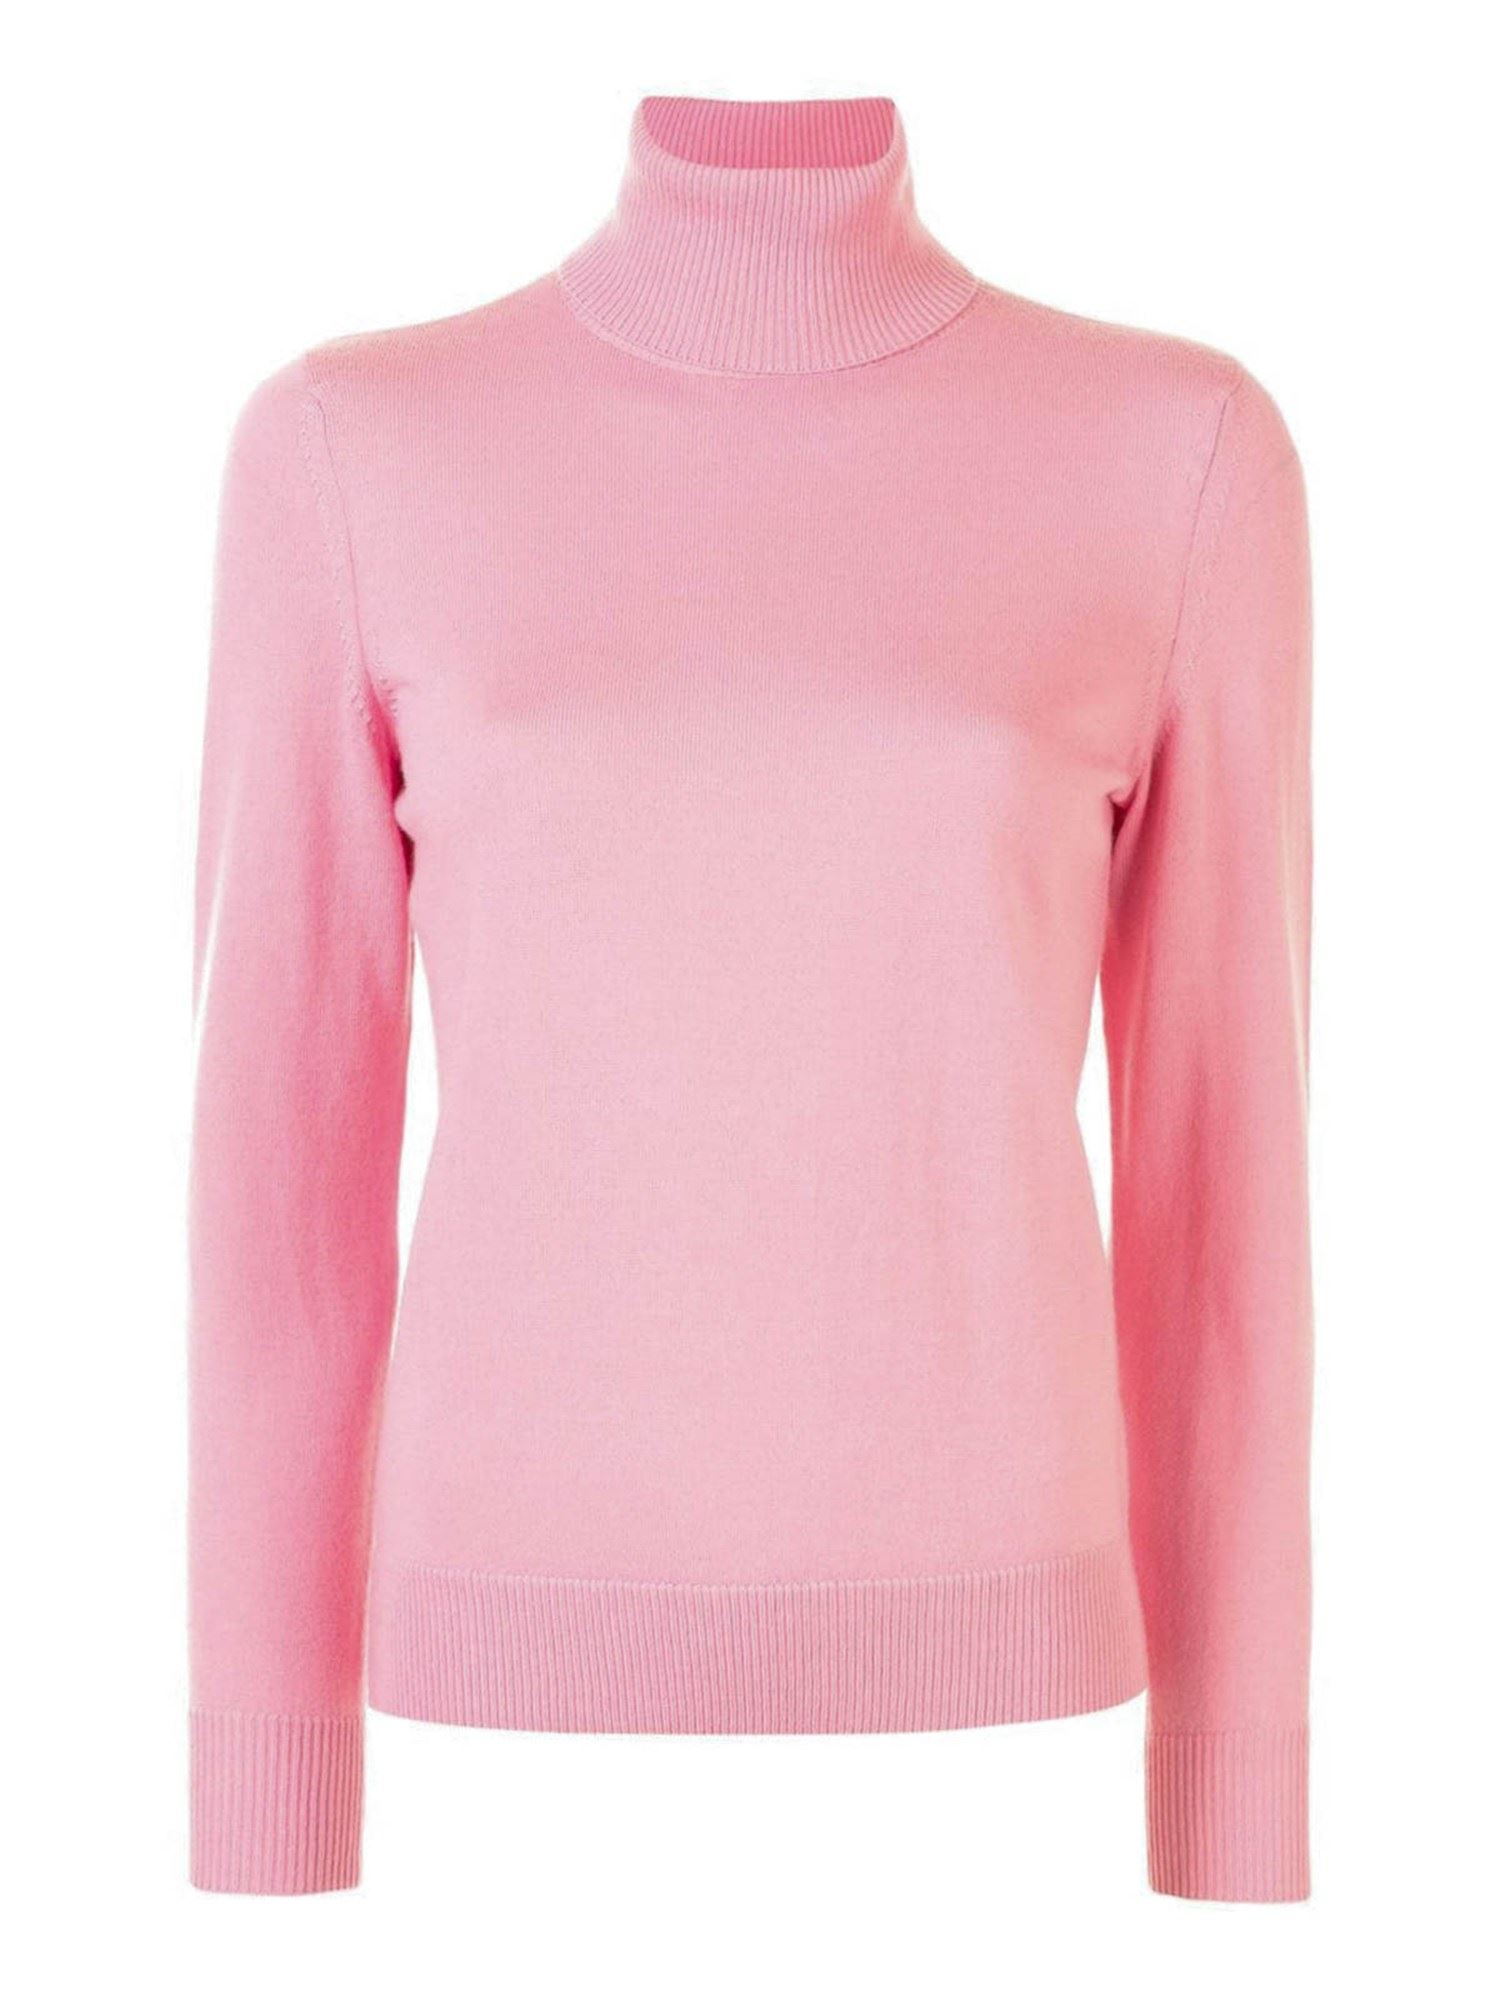 A.p.c. WOOL TURTLE NECK SWEATER IN PINK